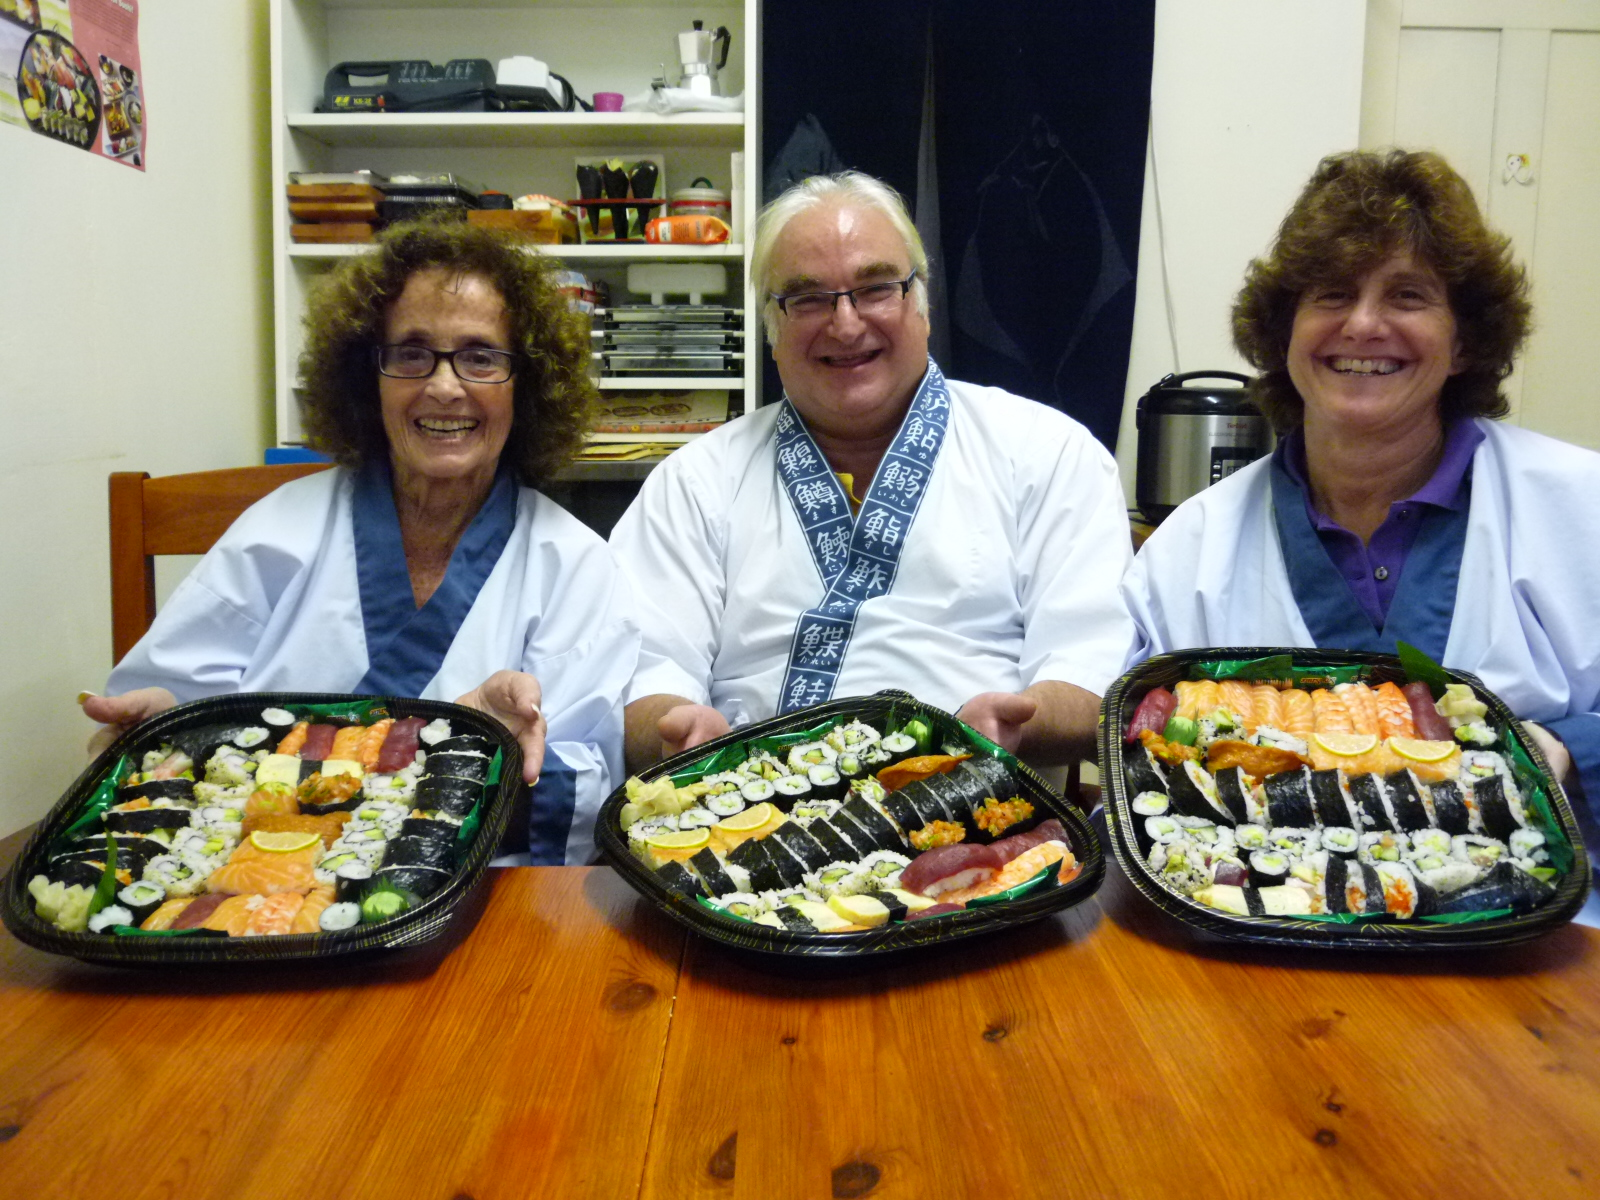 """Thank you both so much for the most enjoyable and informative  afternoon. The course was excellent in both pace and content and the  sushi that we proudly took home was delicious. We all learned so much  and appreciated your professionalism, passion and most of all your  patience. We had a lot of fun and were delighted with the starter kit  that you gave us at the end of the course, we will now be confident  (with a bit of practice) to serve our own sushi at home."""